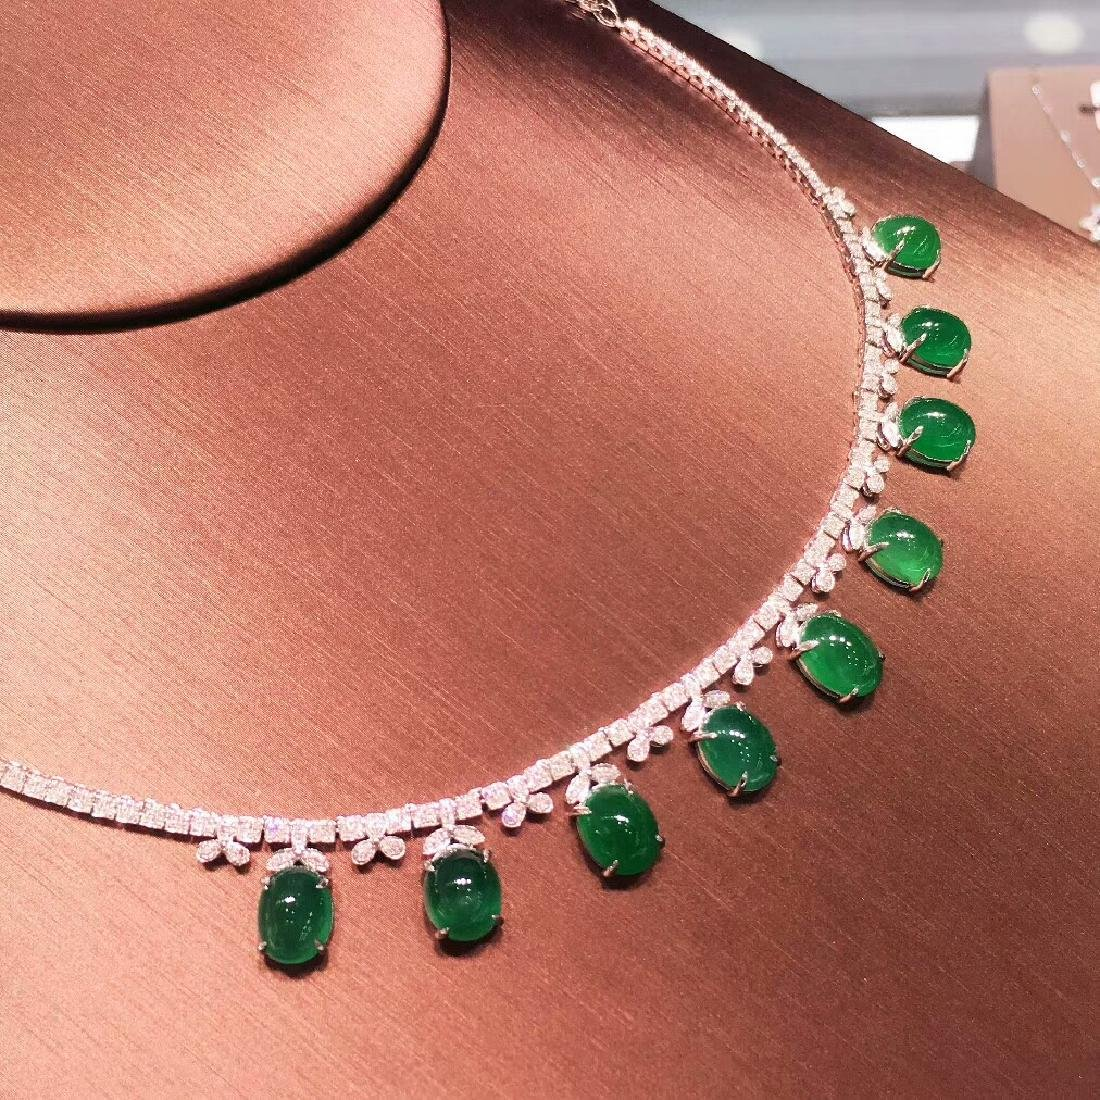 29.5ct Emerald Necklace in 18kt White Gold - 5